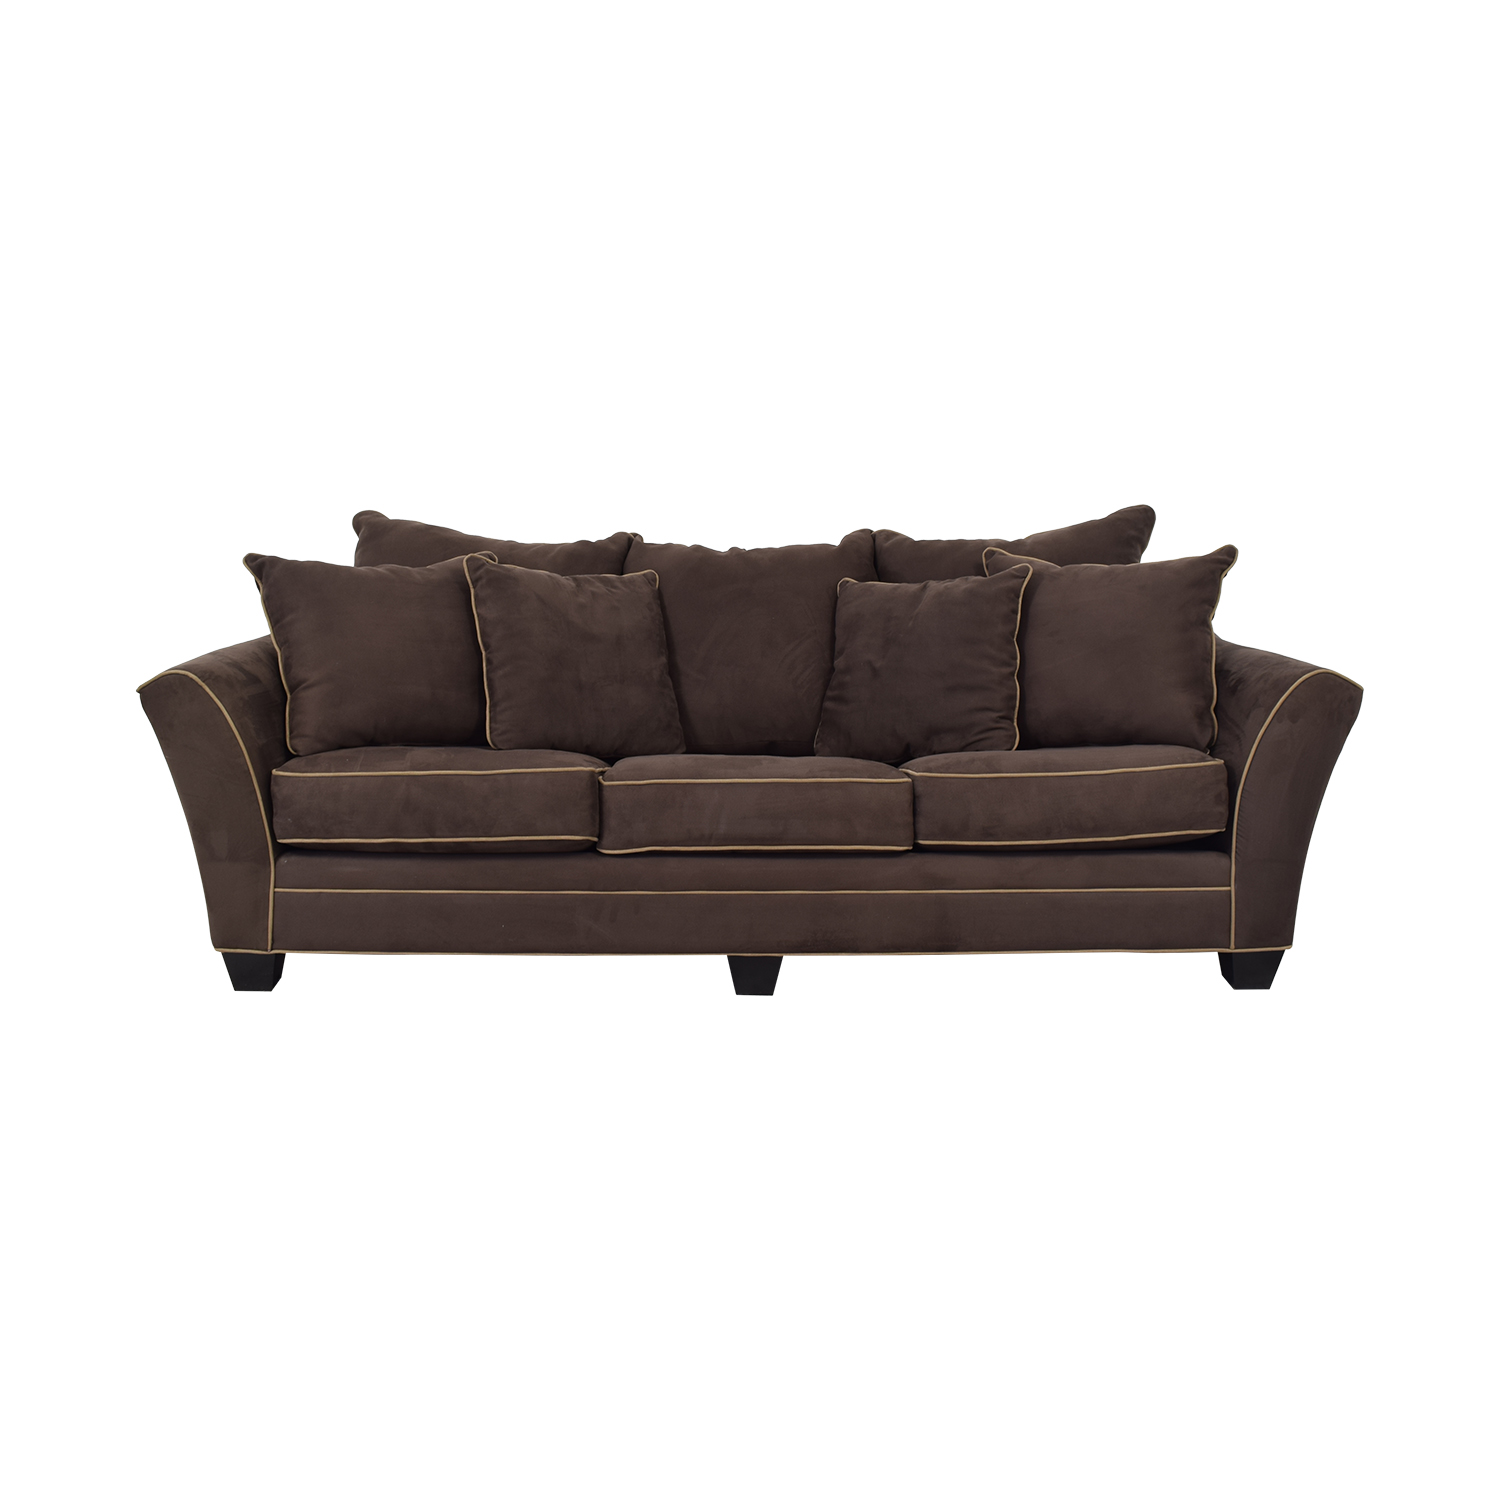 shop Raymour & Flanigan Microfiber Sleeper Sofa Raymour & Flanigan Sofas